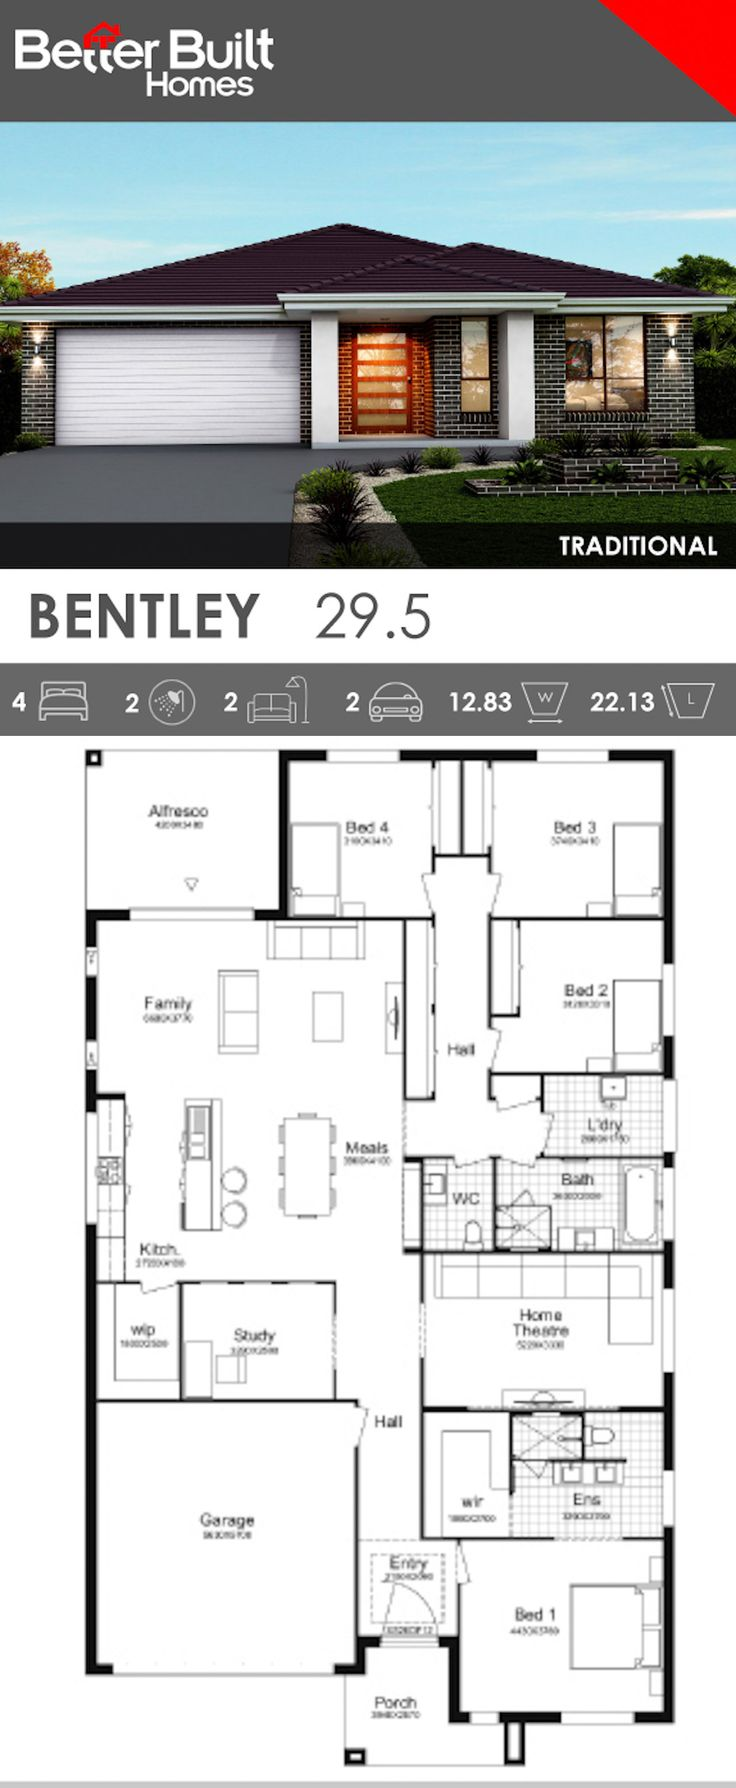 Single storey house design the bentley 29 with traditional facade option this generous layout